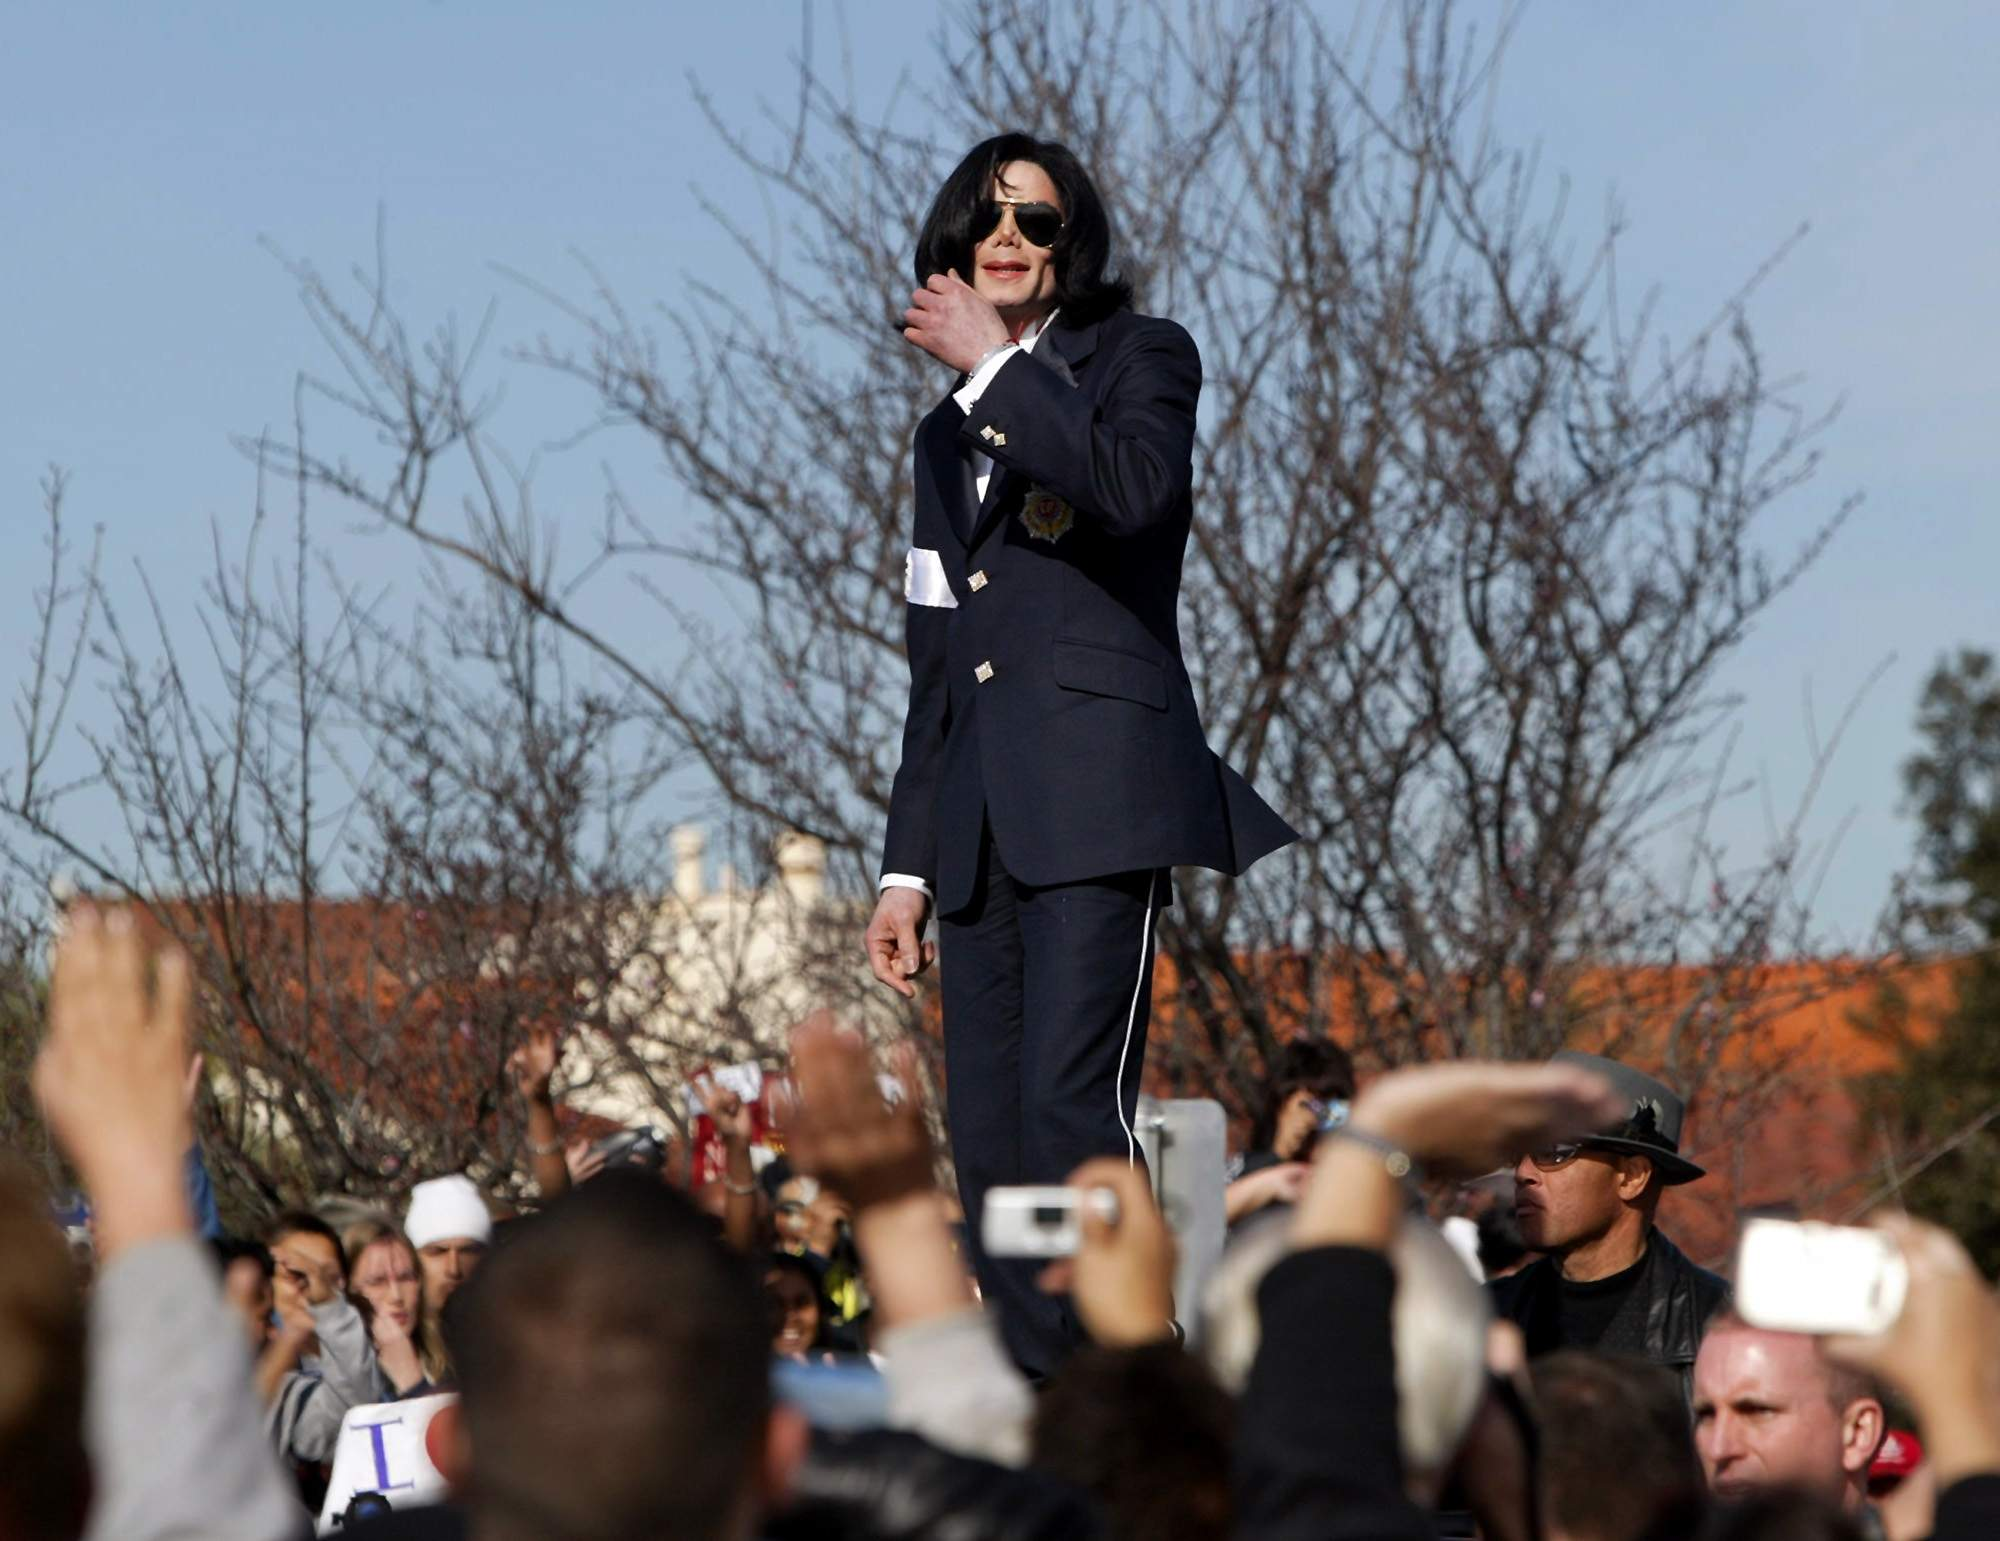 In this Friday, Jan. 16, 2004, file photo, Michael Jackson waves to his fans from atop his limousine after his arraignment on child molestation charges at the courthouse in Santa Maria, Calif. NICK UT/THE ASSOCIATED PRESS